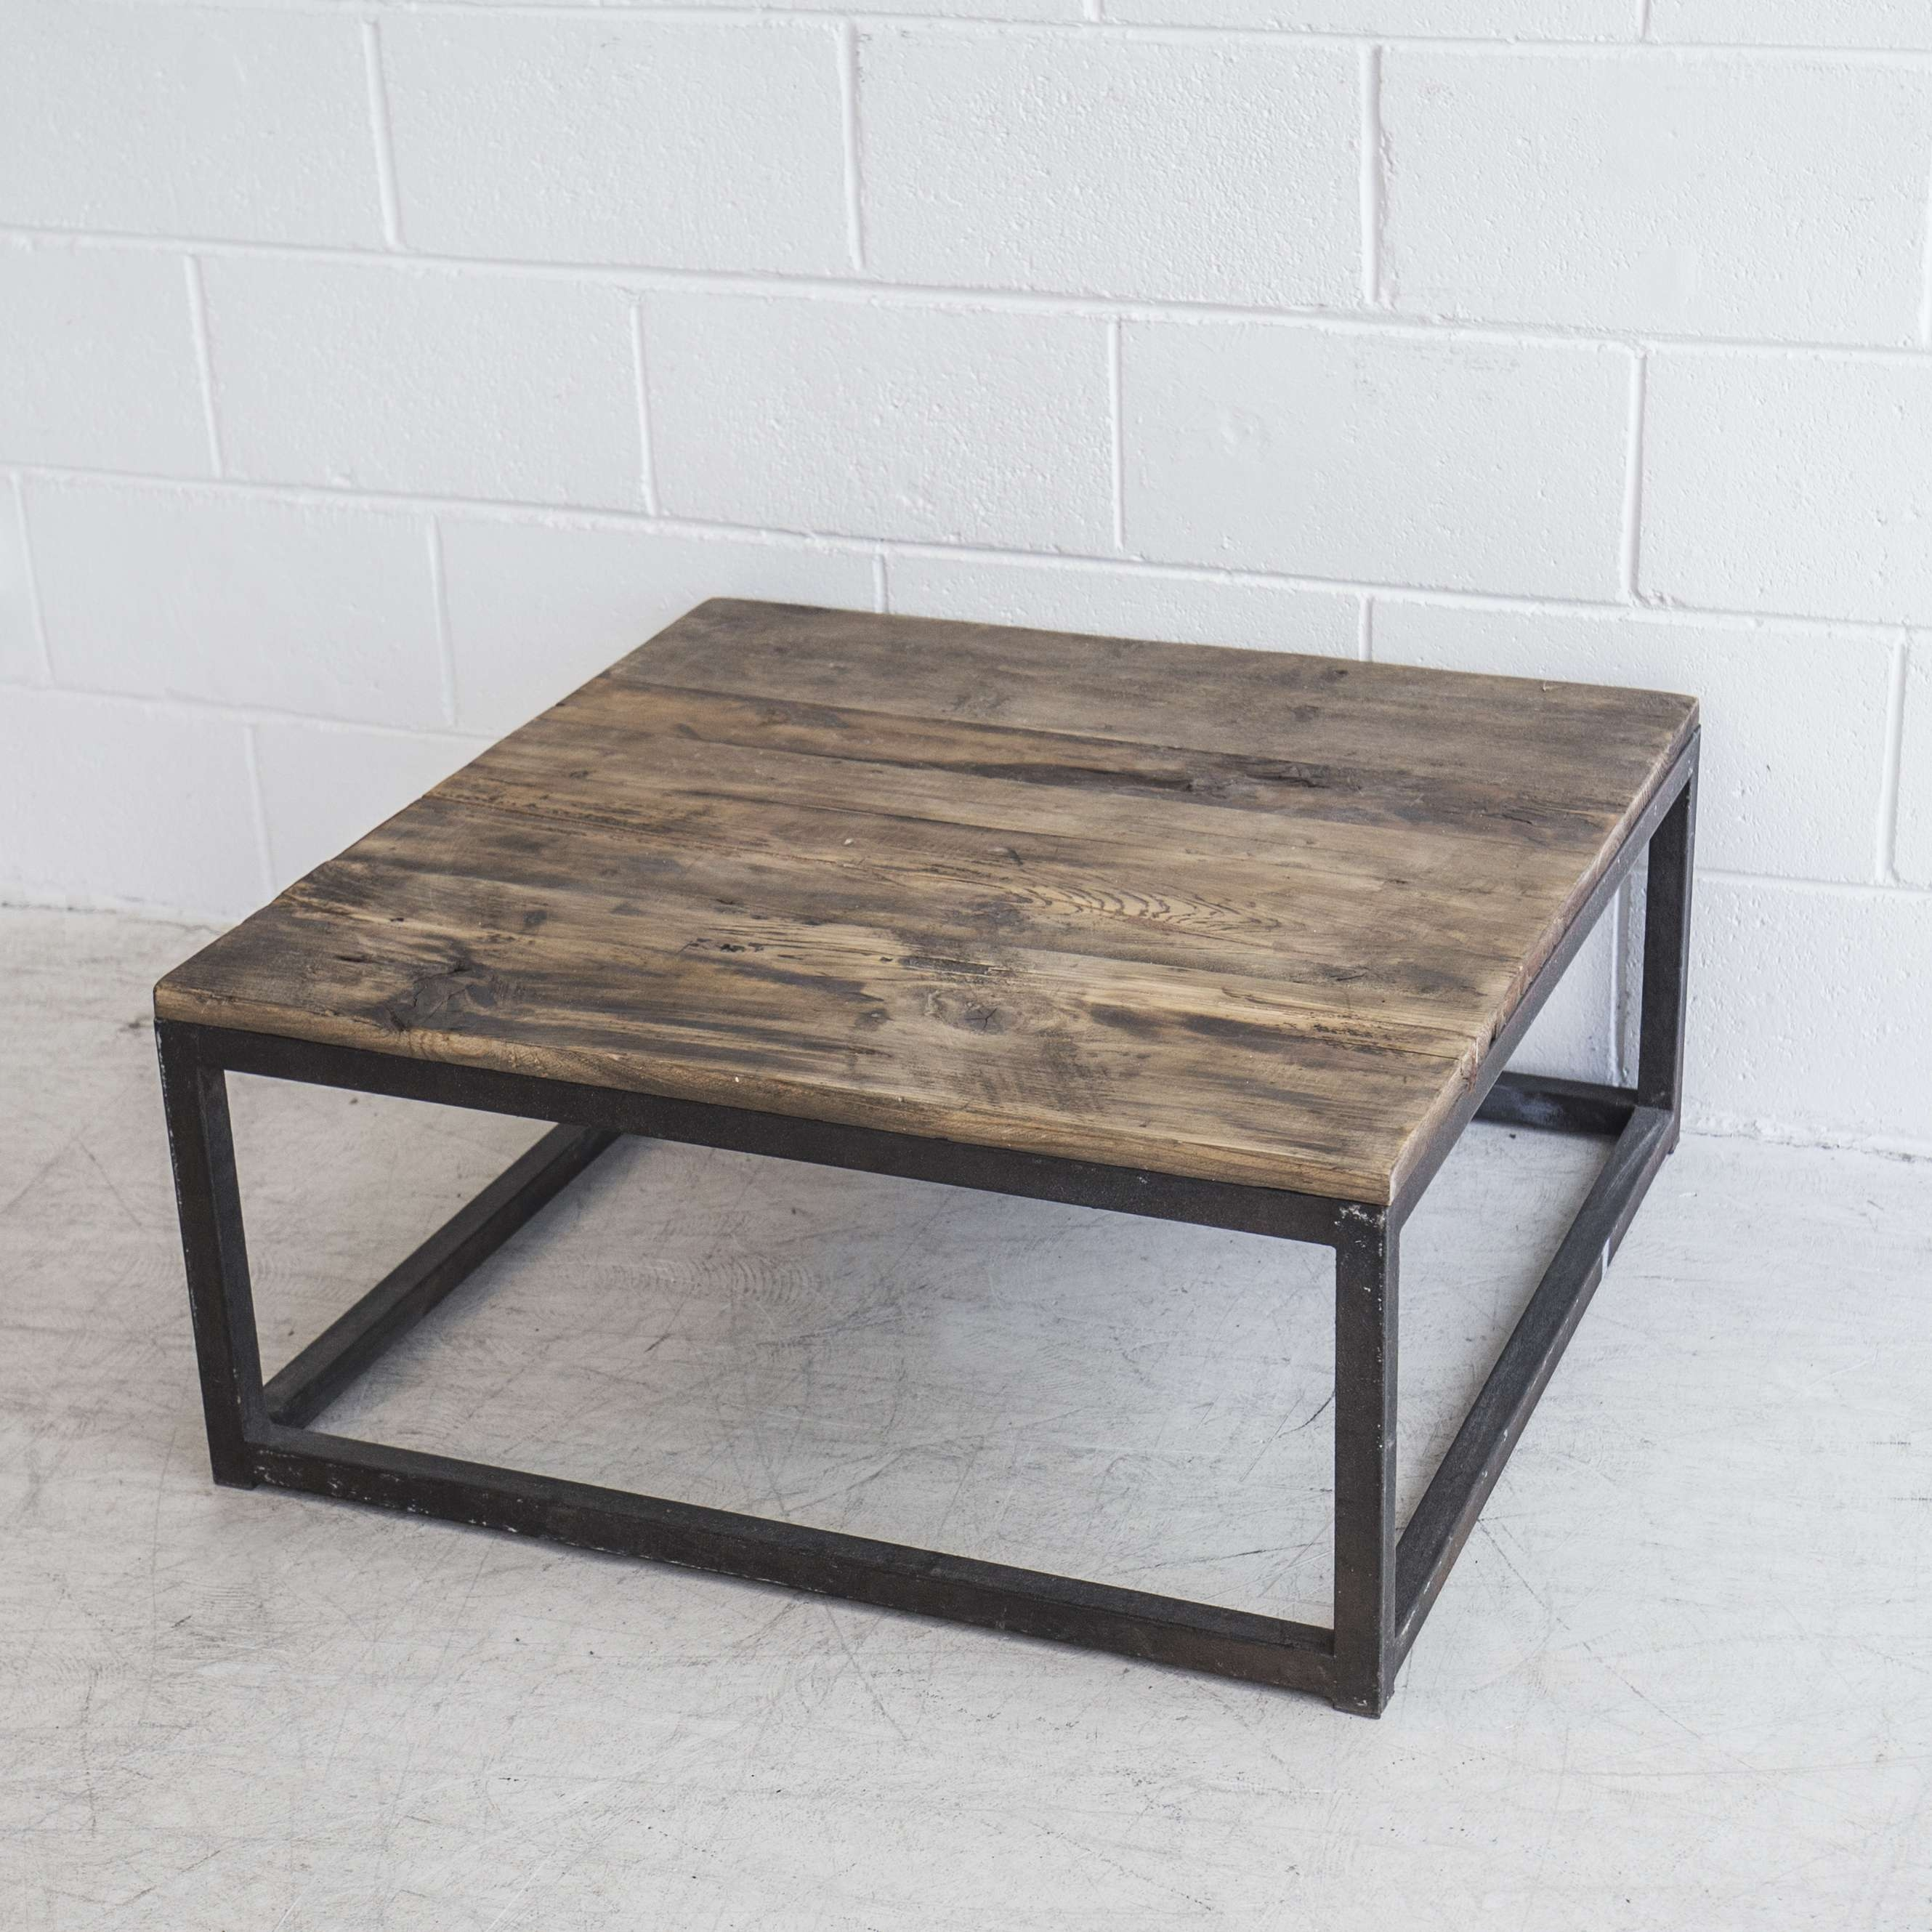 Most Popular Large Low Oak Coffee Tables Regarding Coffee Tables : Large Coffees With Storage Extra For Sale Wheels (View 16 of 20)